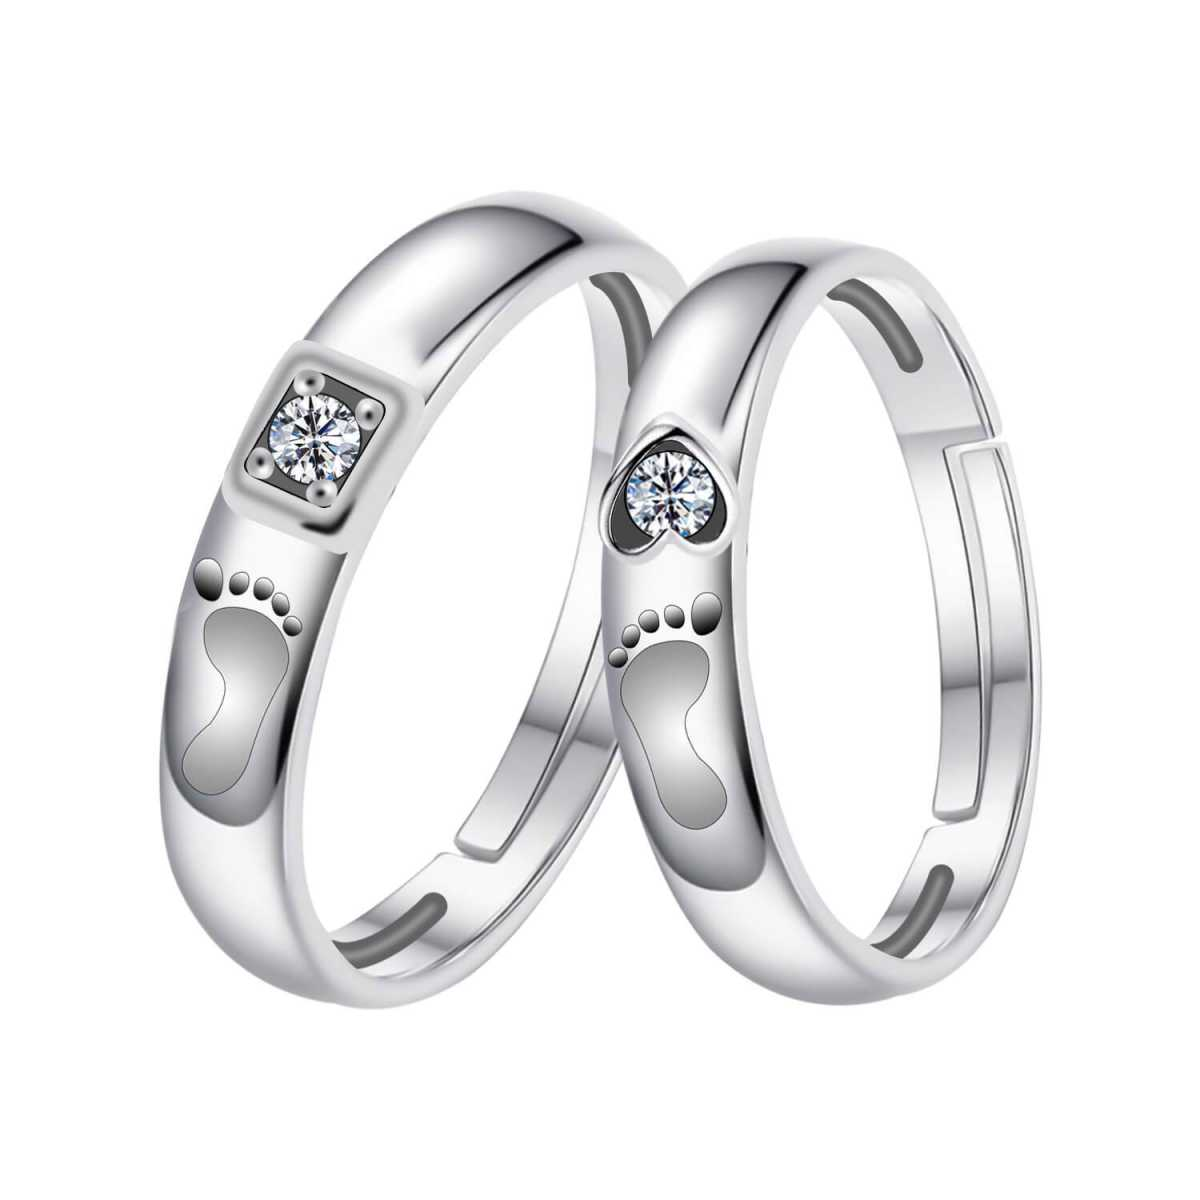 Silverplated  Elegant  Solitaire  proposal couple ring For Men And Women Jewellery